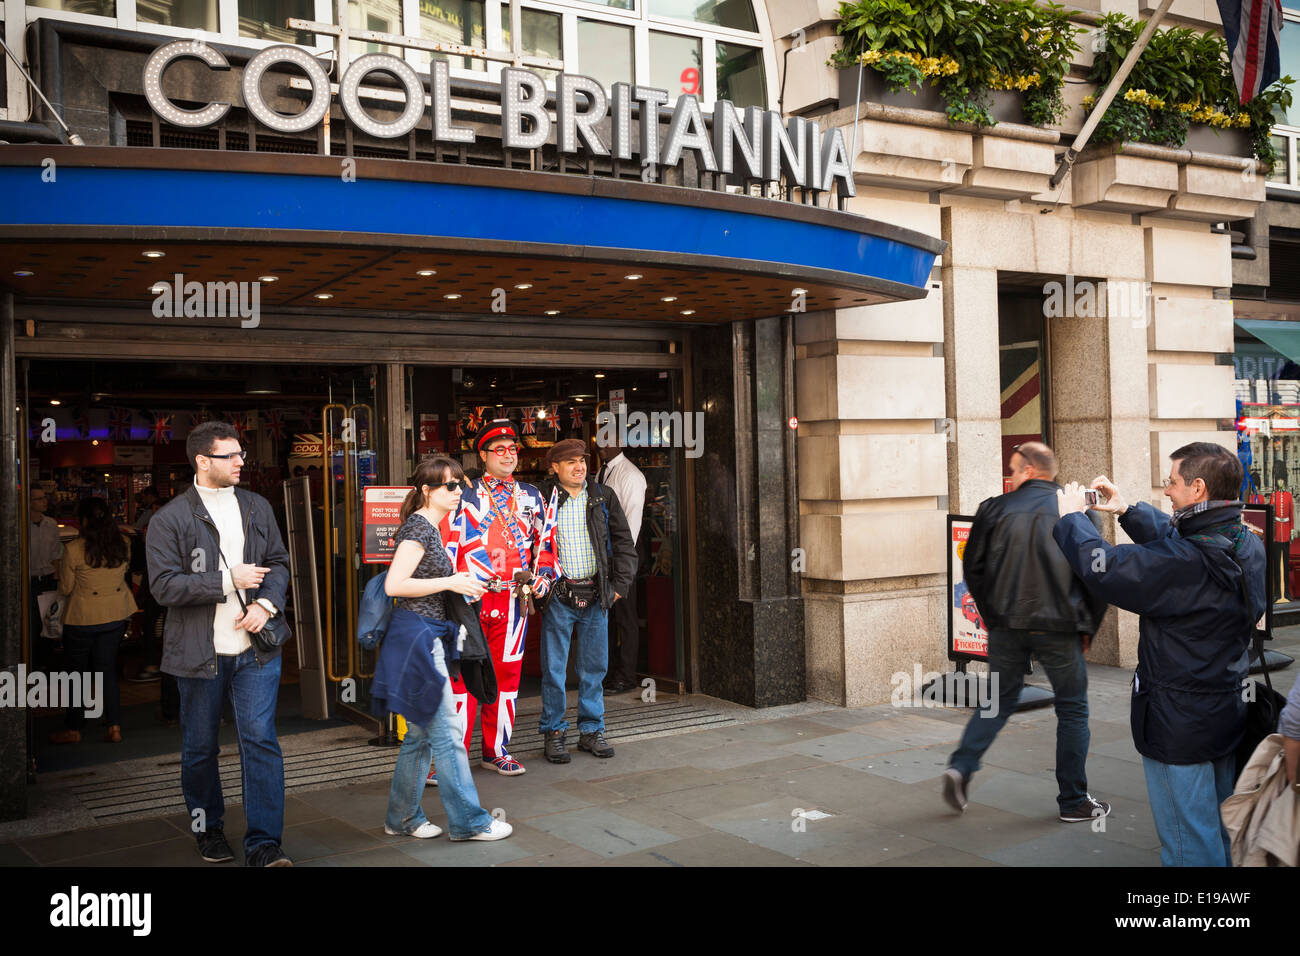 Les touristes photographiés avec la porte à l'homme Cool Britannia dans Piccadilly Londres. Photo Stock